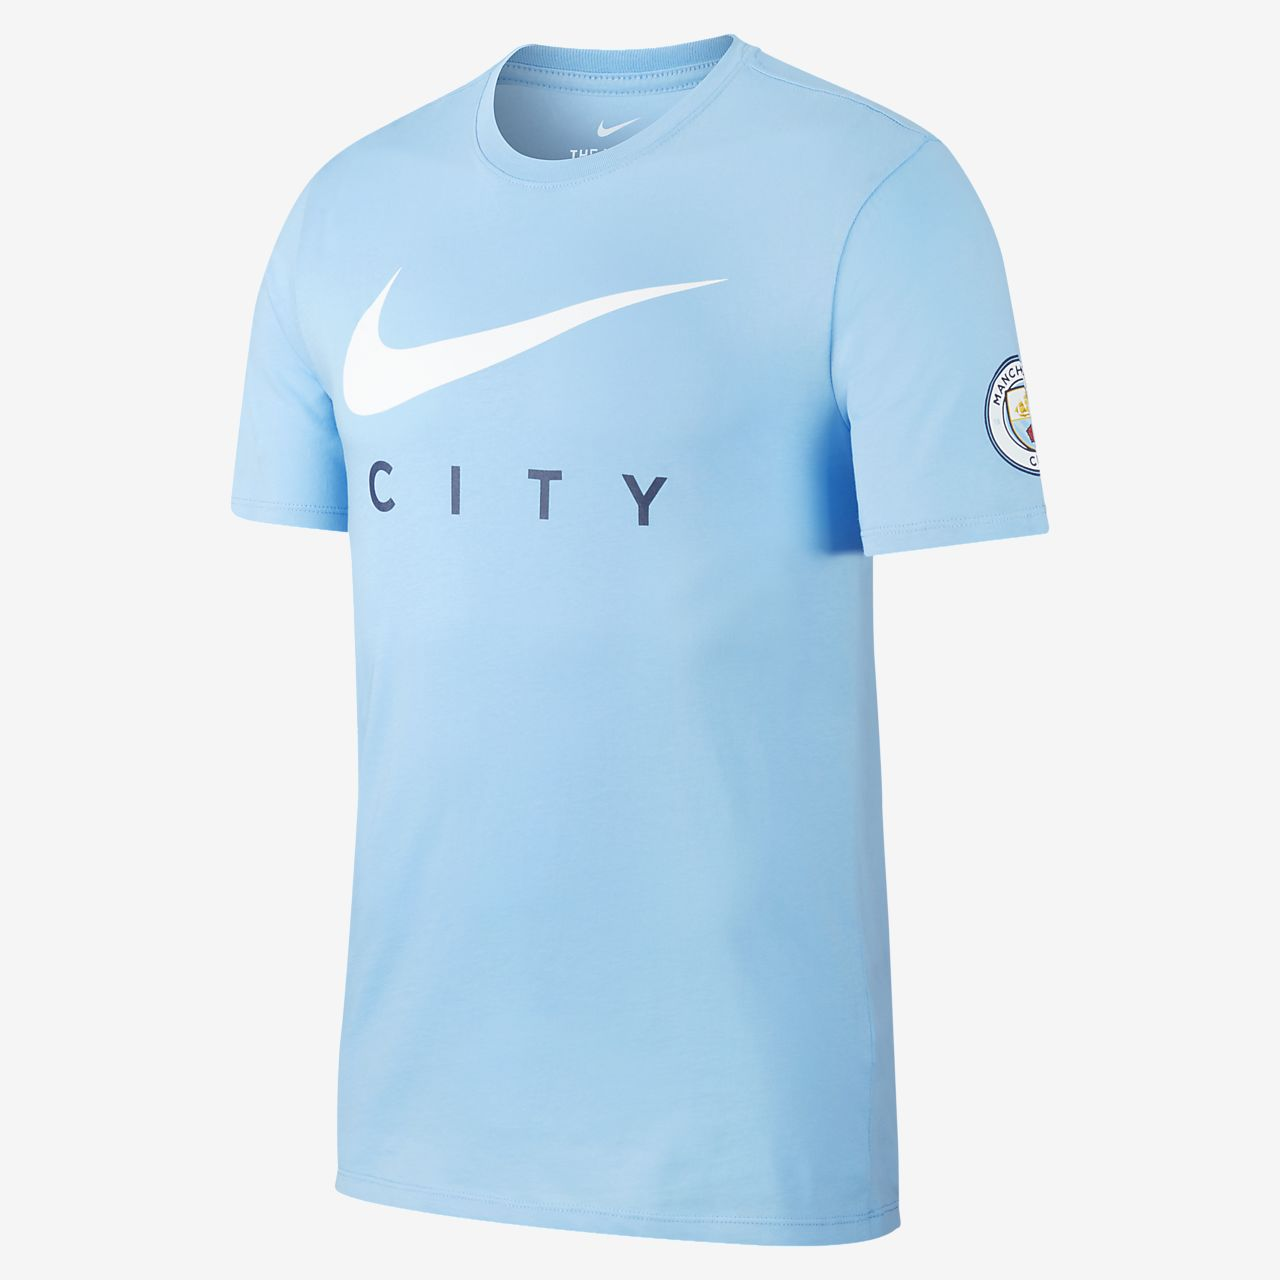 Pour Tee Shirt Be Homme Manchester City 44O67w1tqF